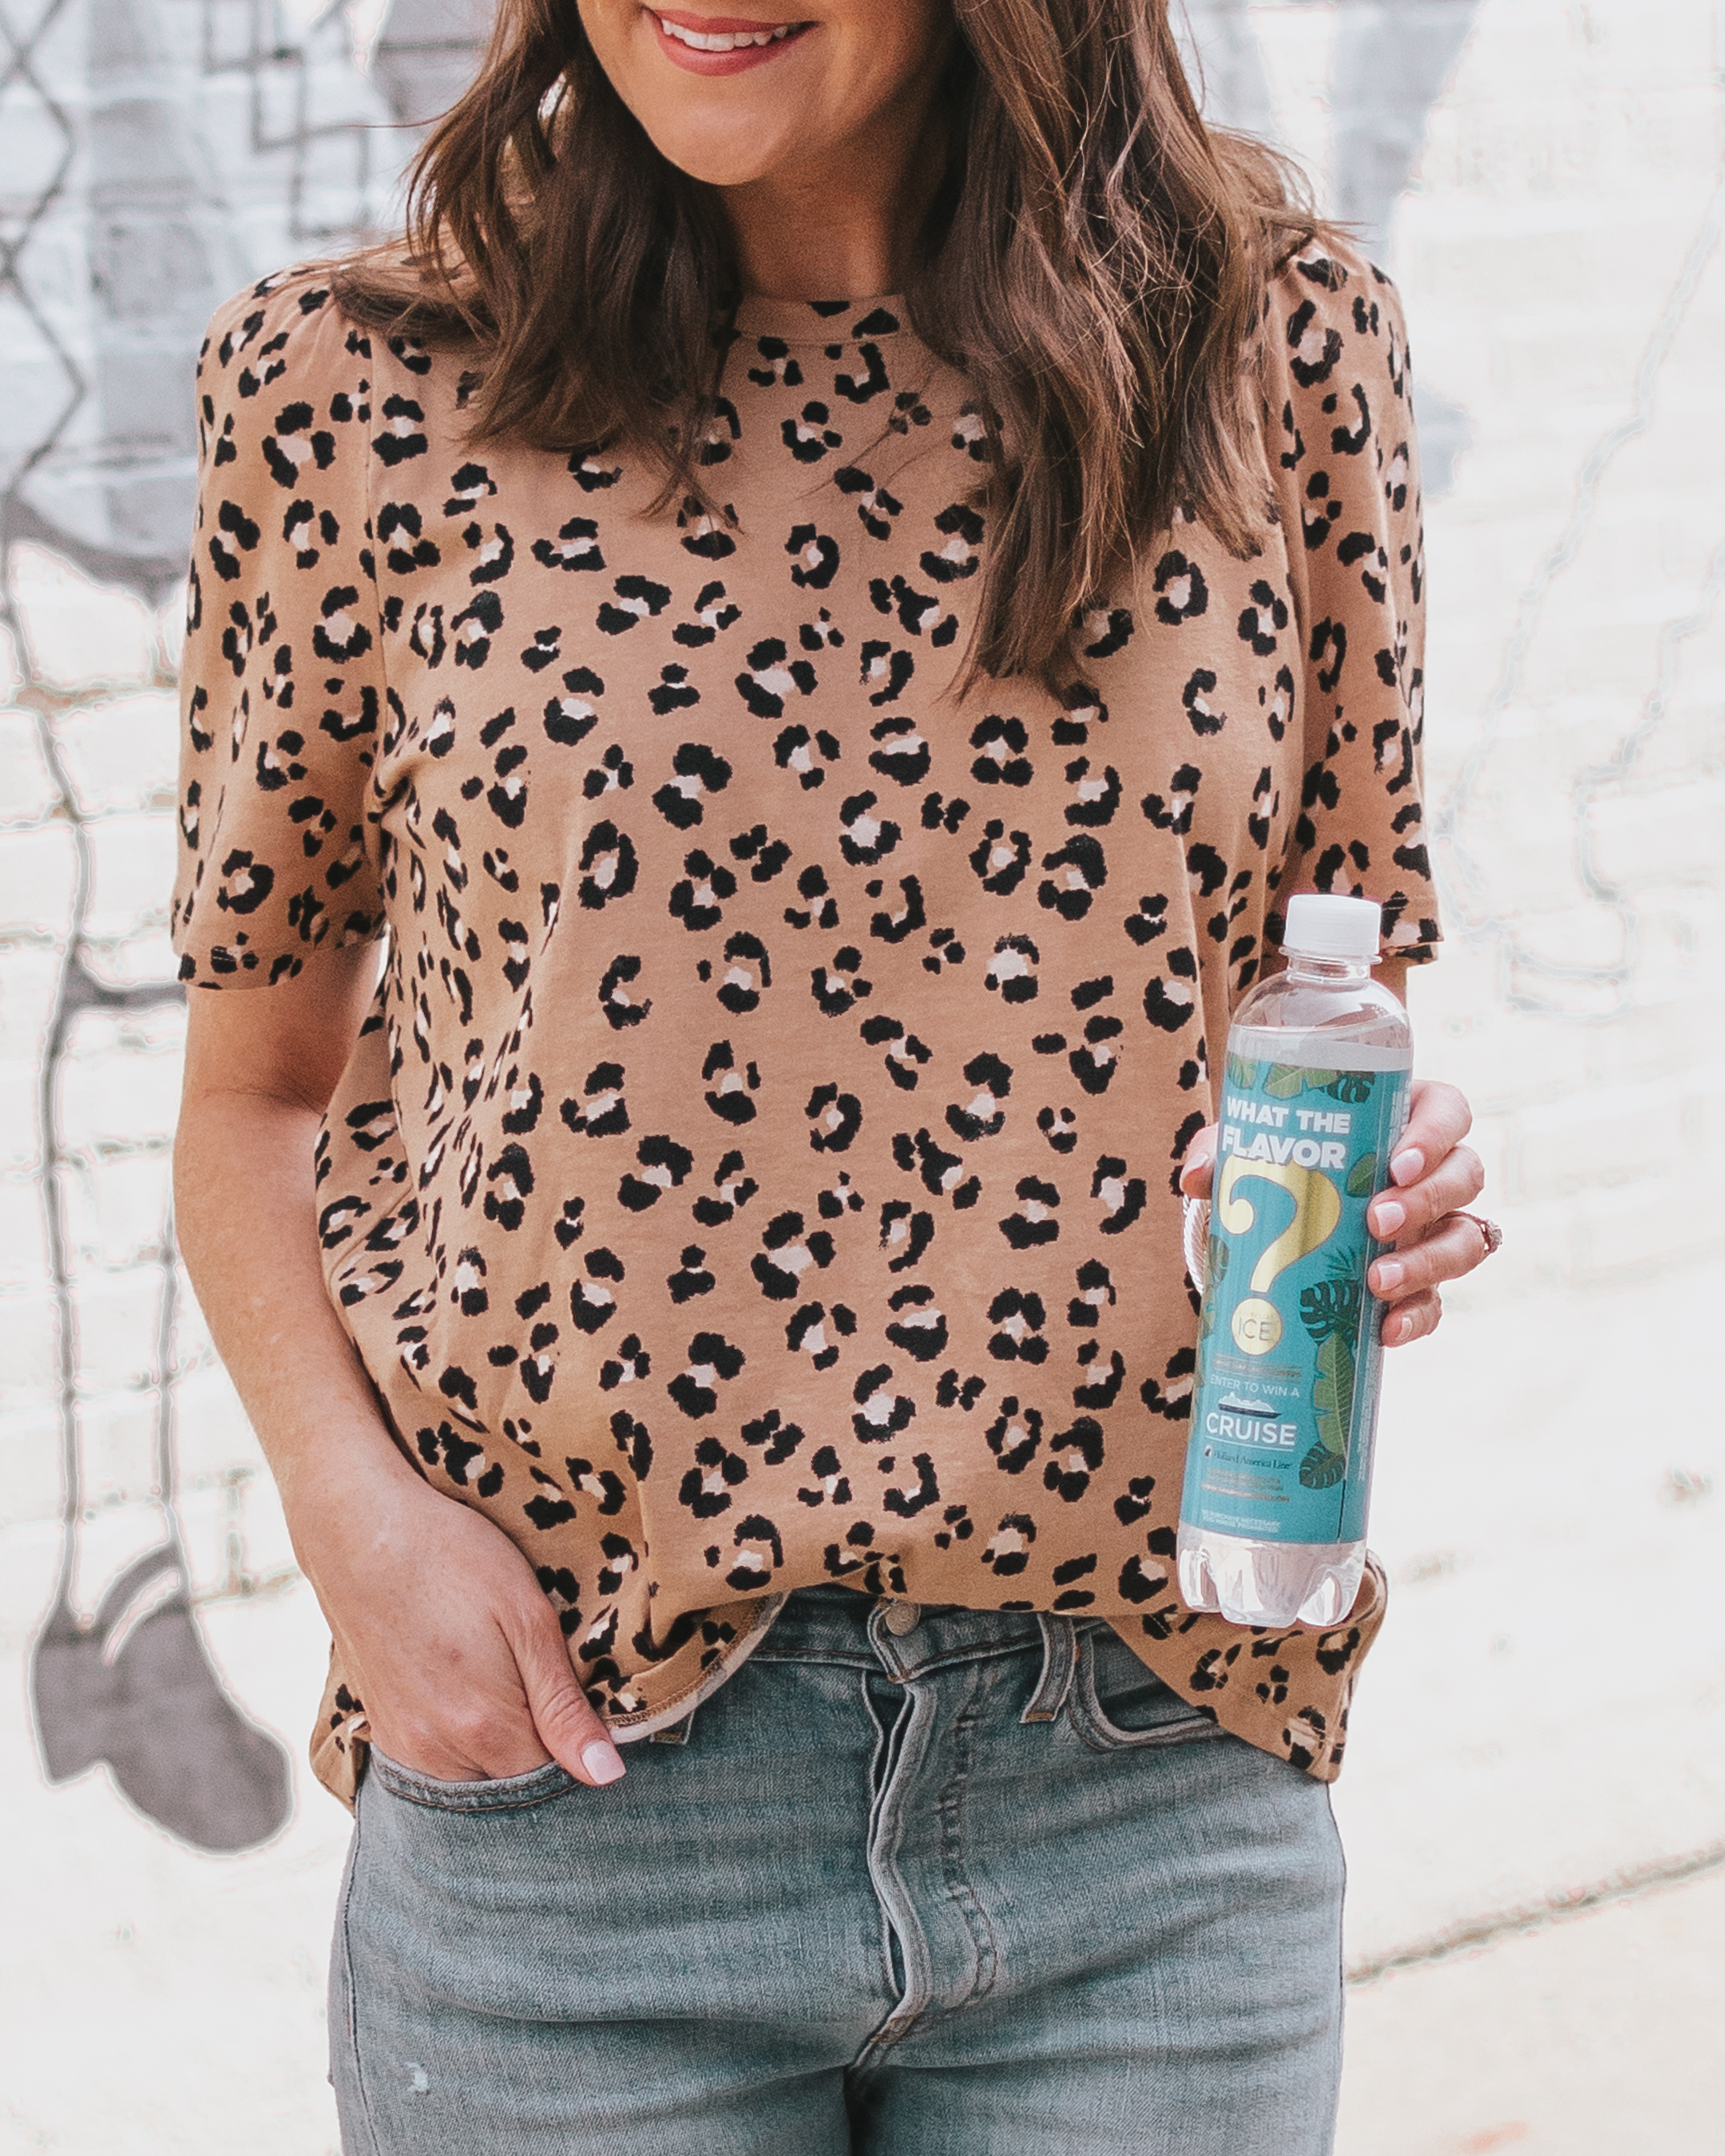 how I enjoy the season change, sparkling ice mystery flavors, leopard tee